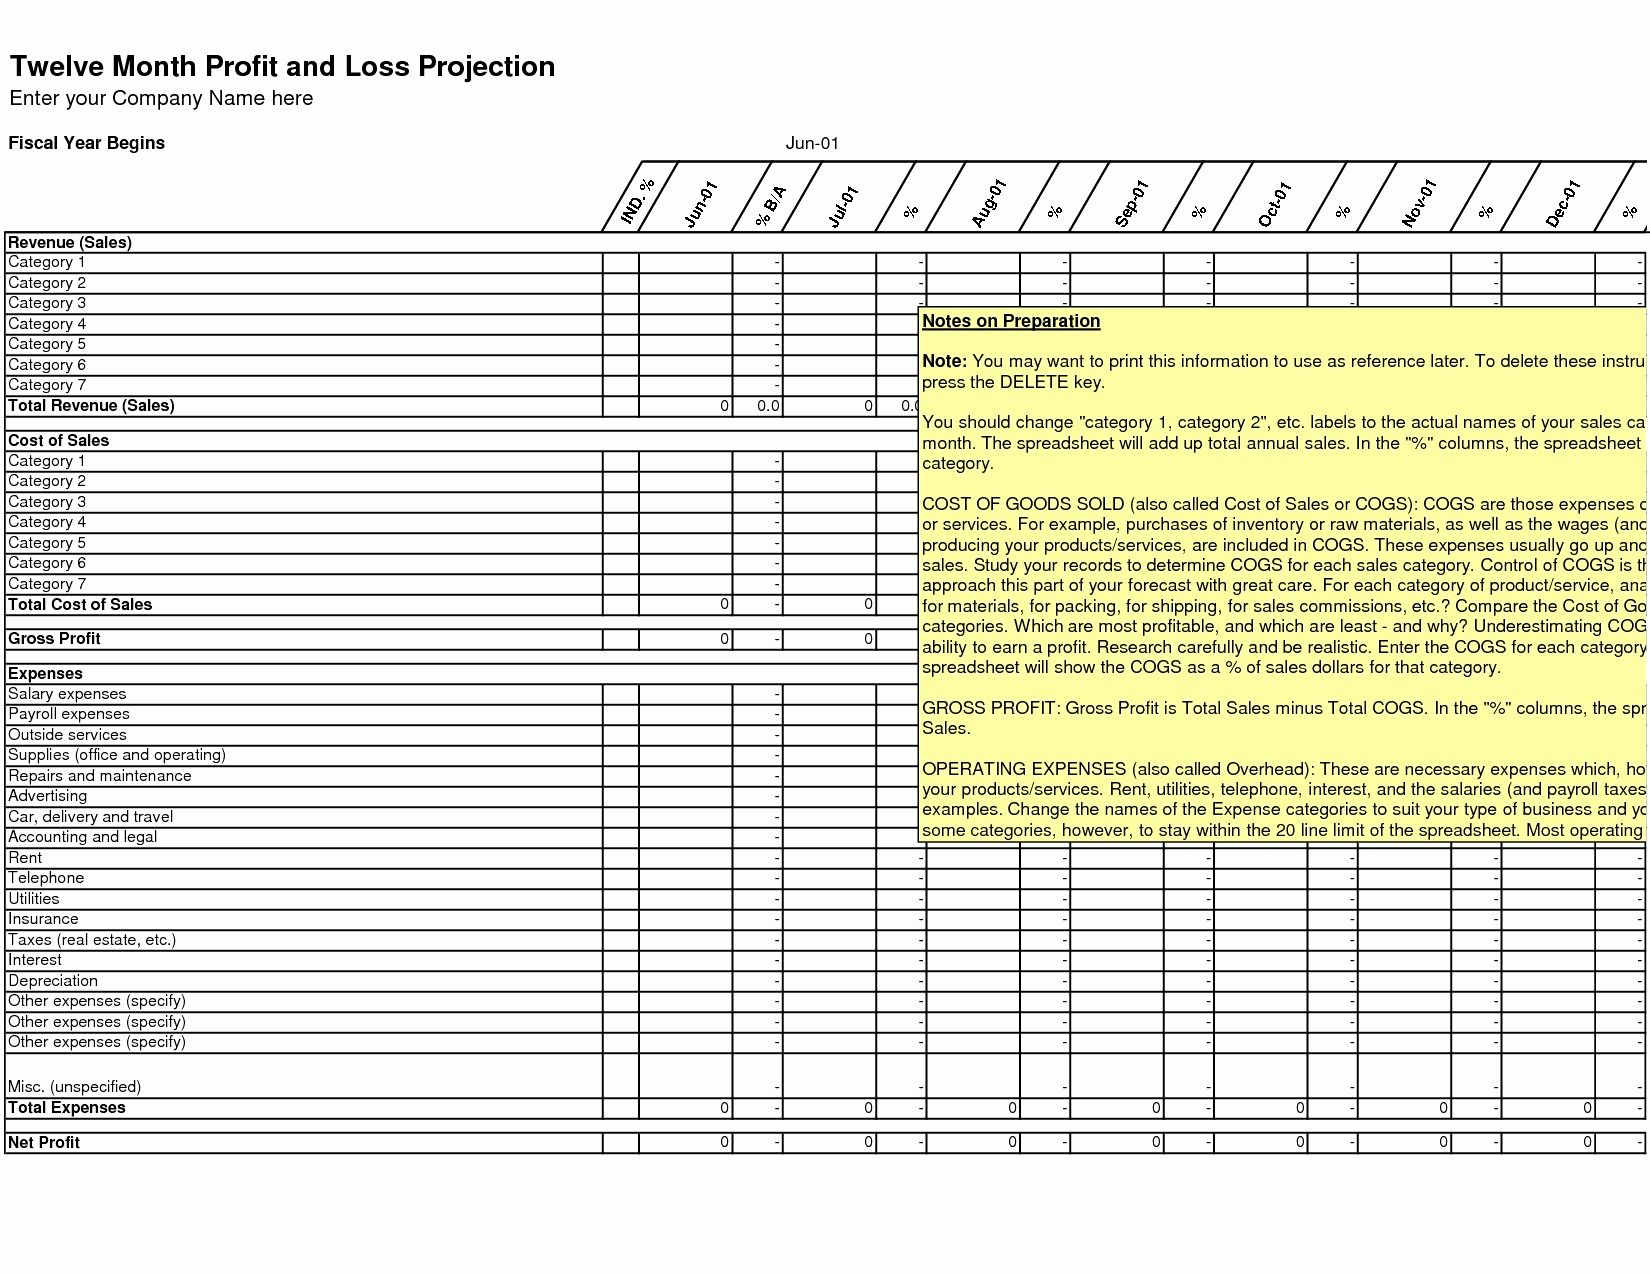 Rental Property Tax Deductions Worksheet